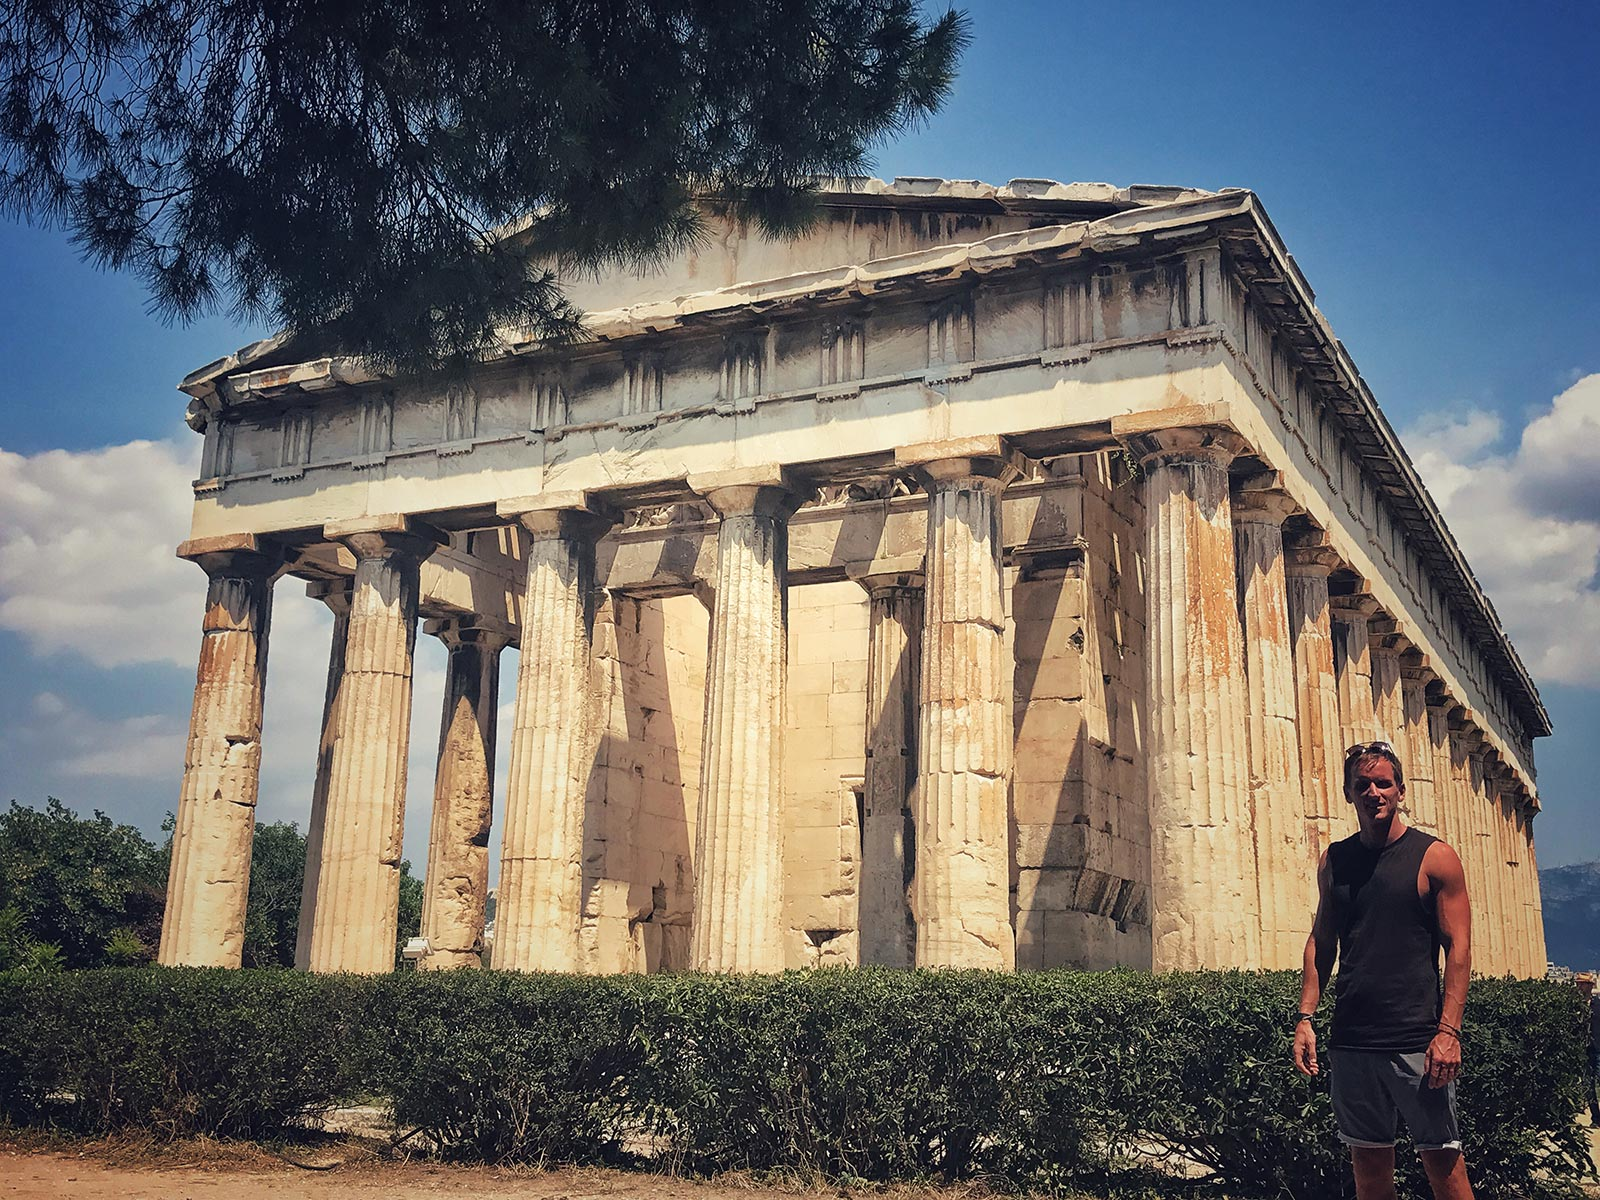 David Simpson and Temple of Hephaestus at Ancient Agora in Athens, Greece. Athens has me